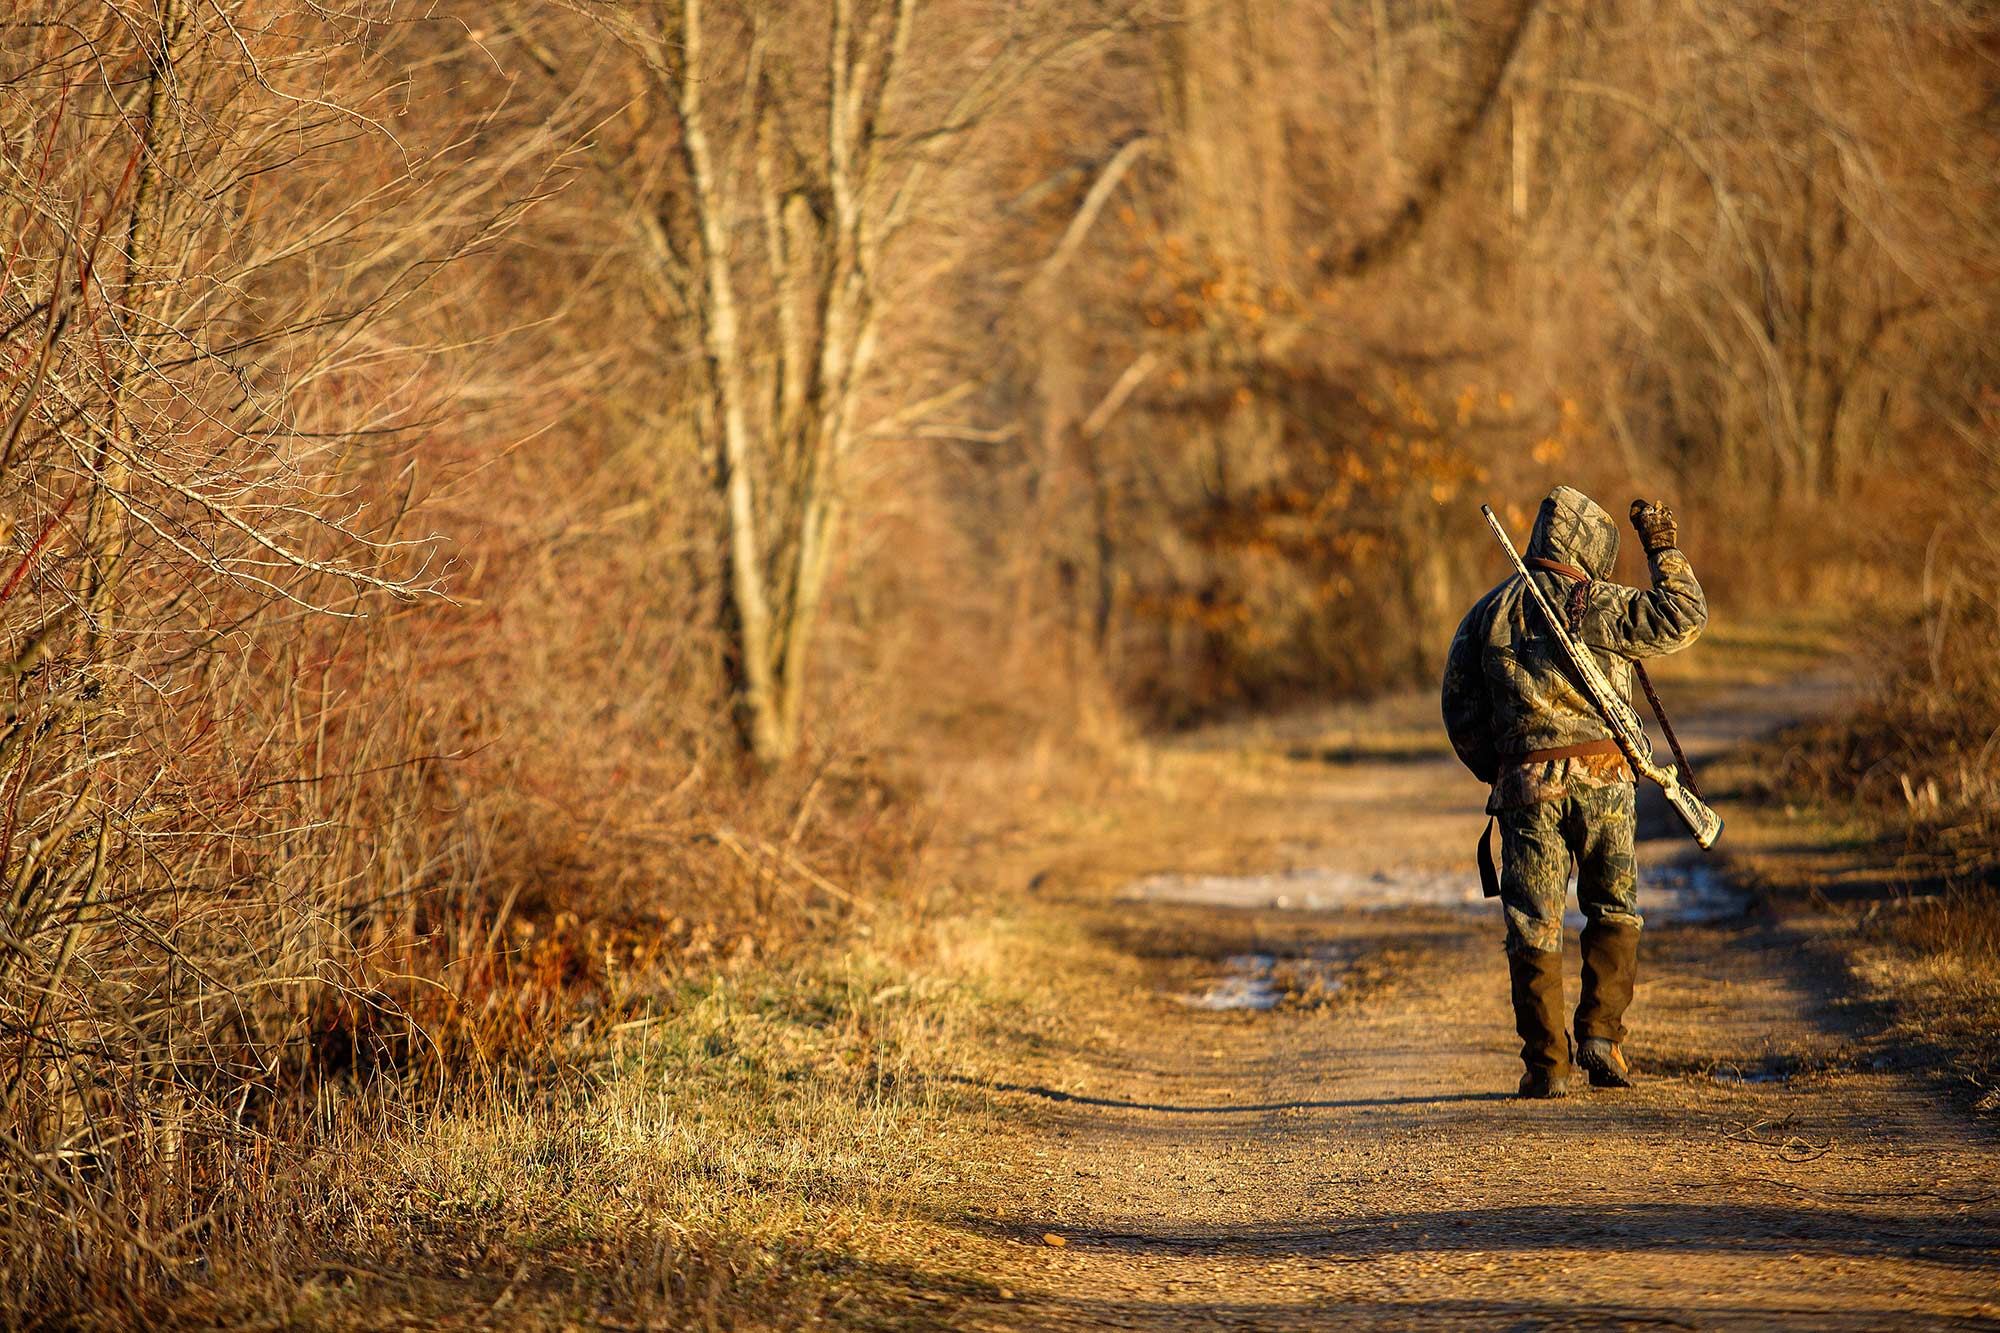 Duck Season, Wabbit Season - 1/1/15